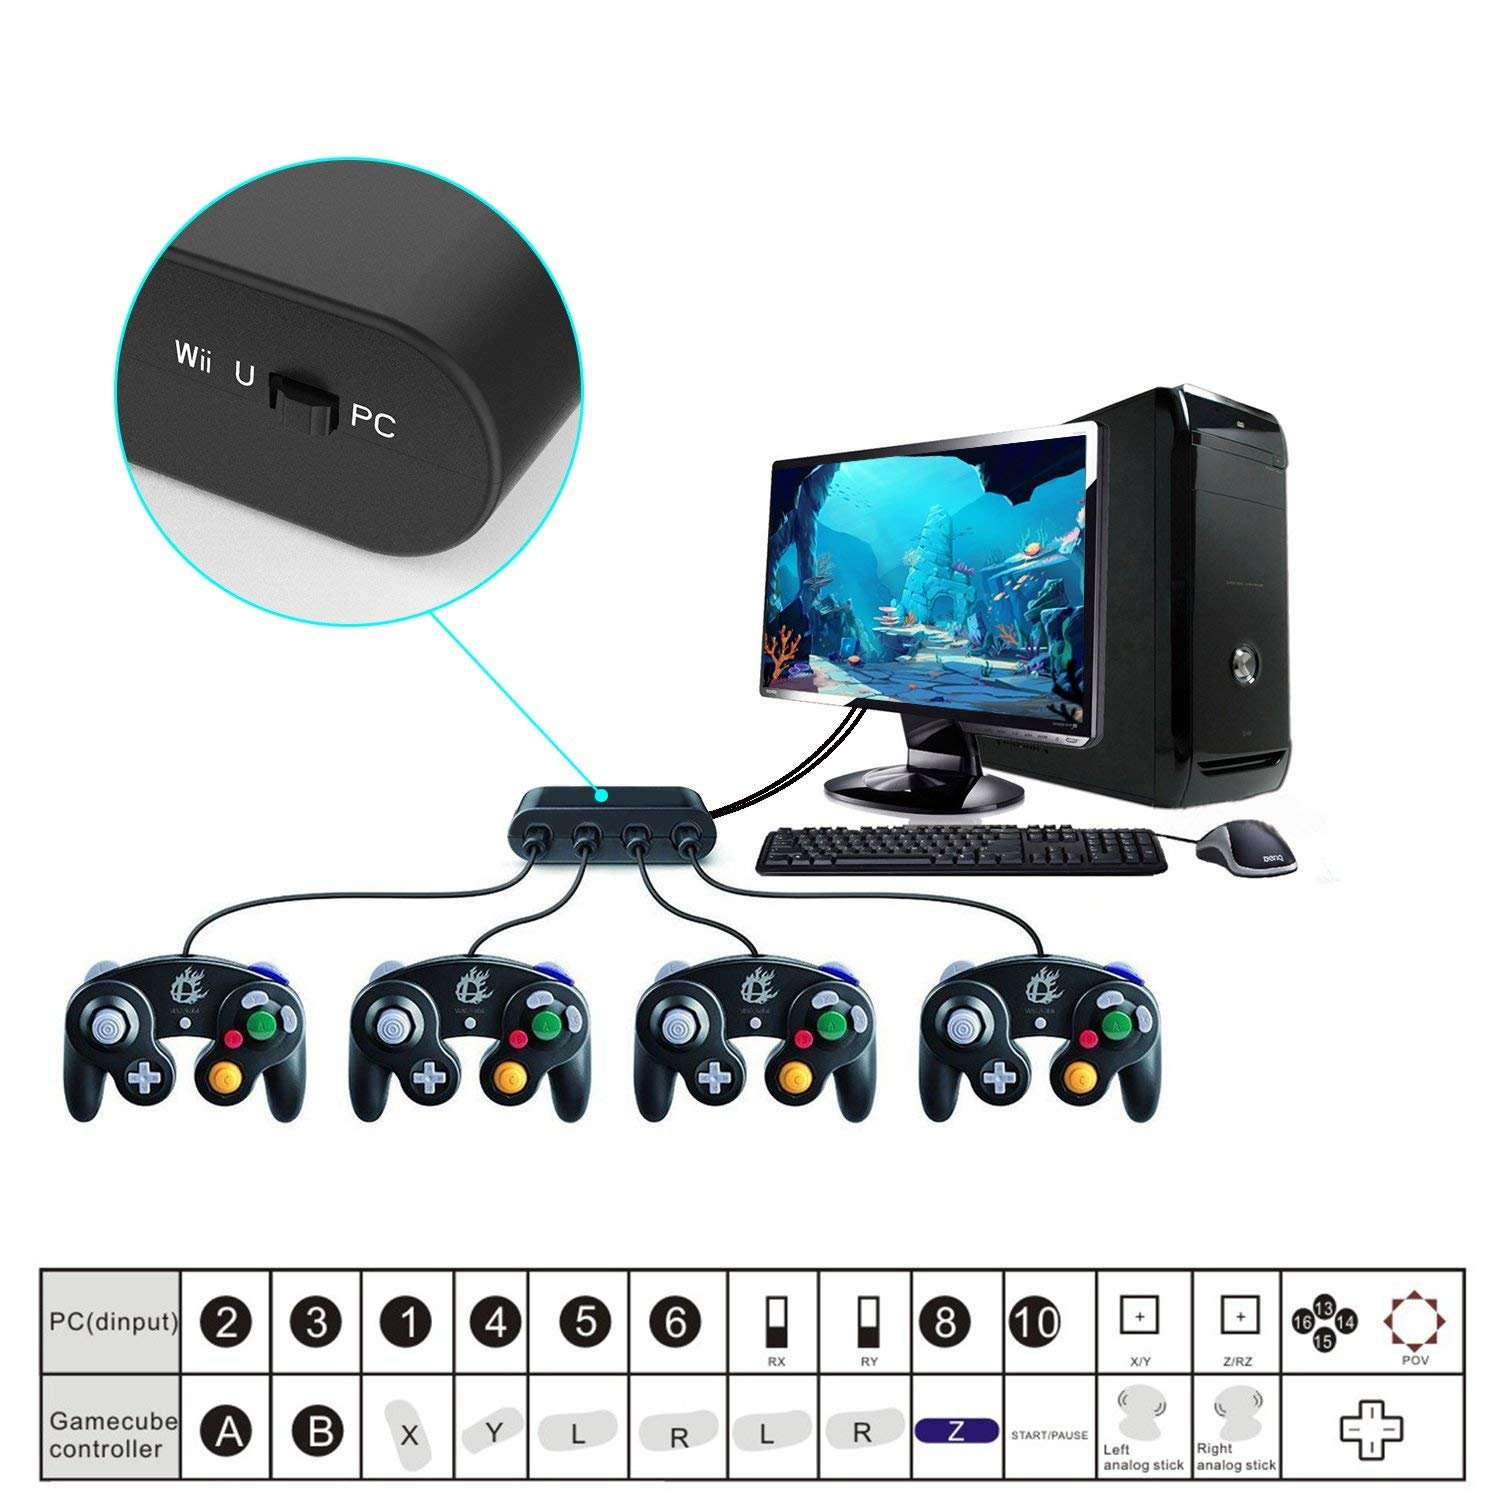 Gamecube Controller Adapter. Super Smash Bros Wii U Gamecube Adapter for Pc, Switch. No Driver Need and Easy to Use. 4 Port Black Gamecube Adapter(Improved Version) by Cloudream (Image #4)